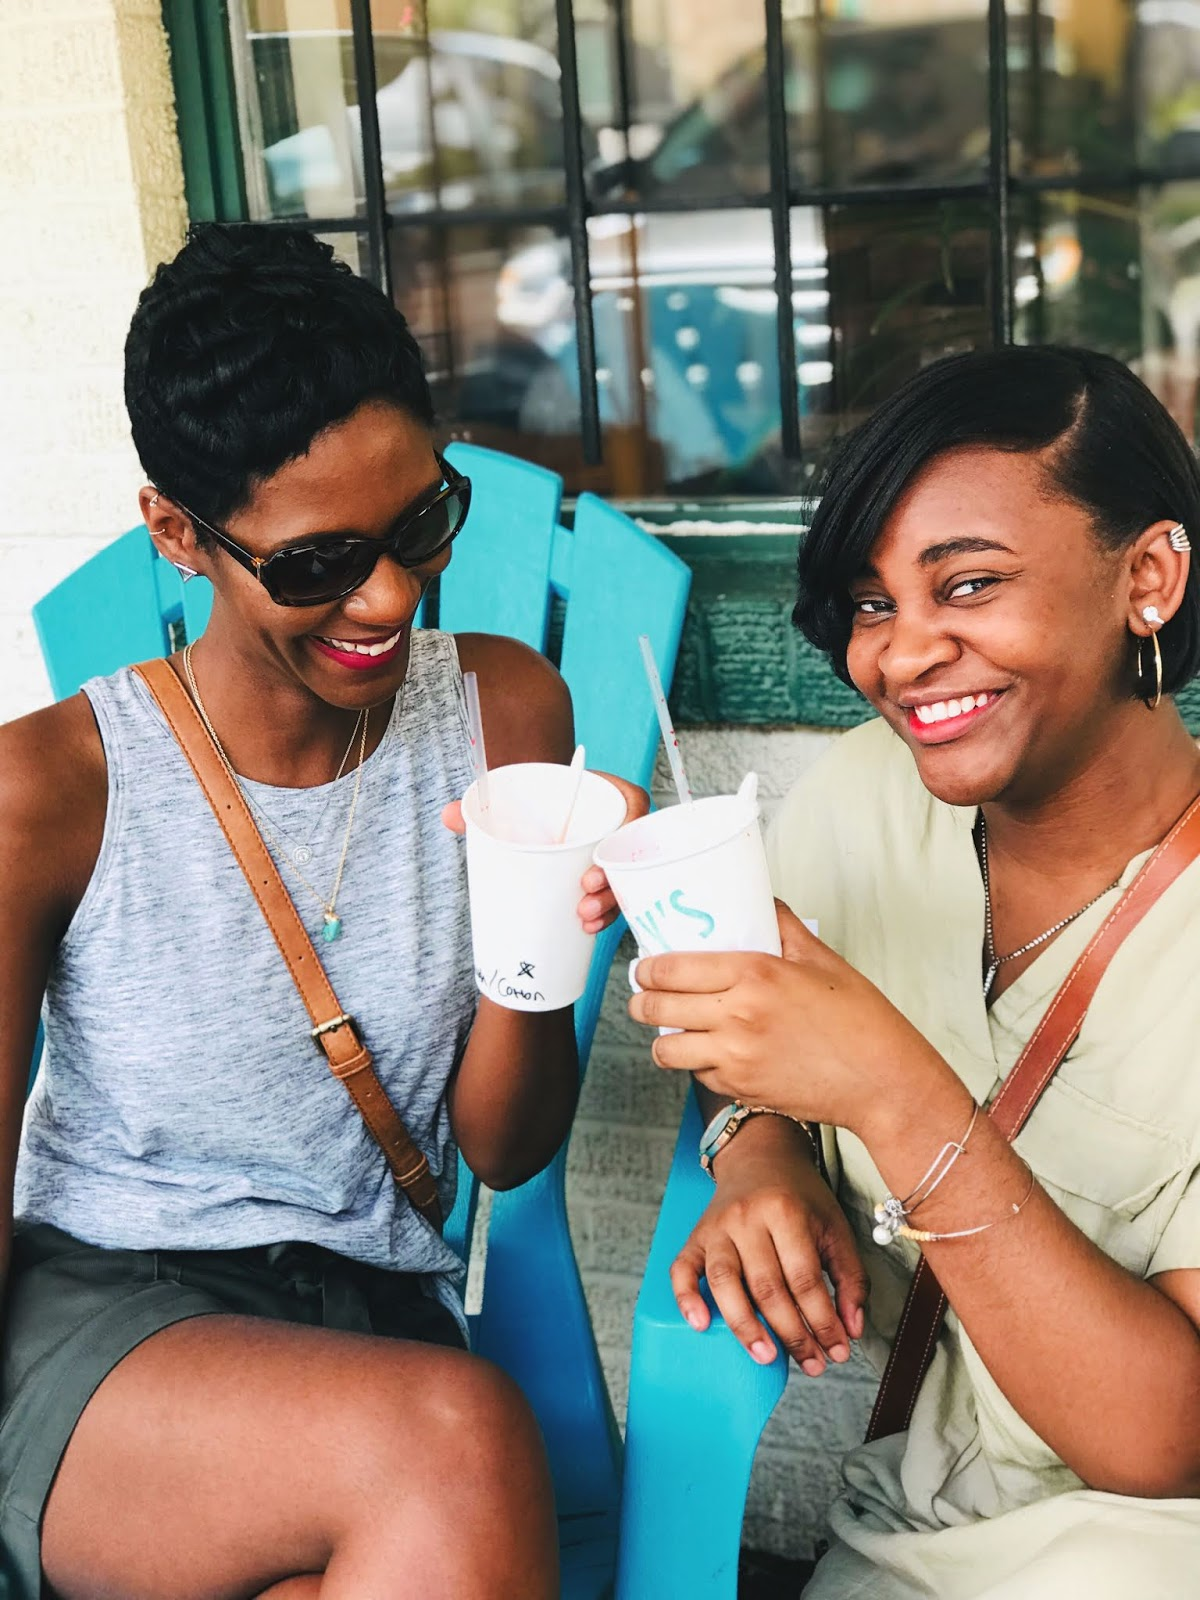 Old Fashioned Sno Cones Are The YUMMIEST: Funny Stories To Tell, Red Lips And A SUPER Hot Day!